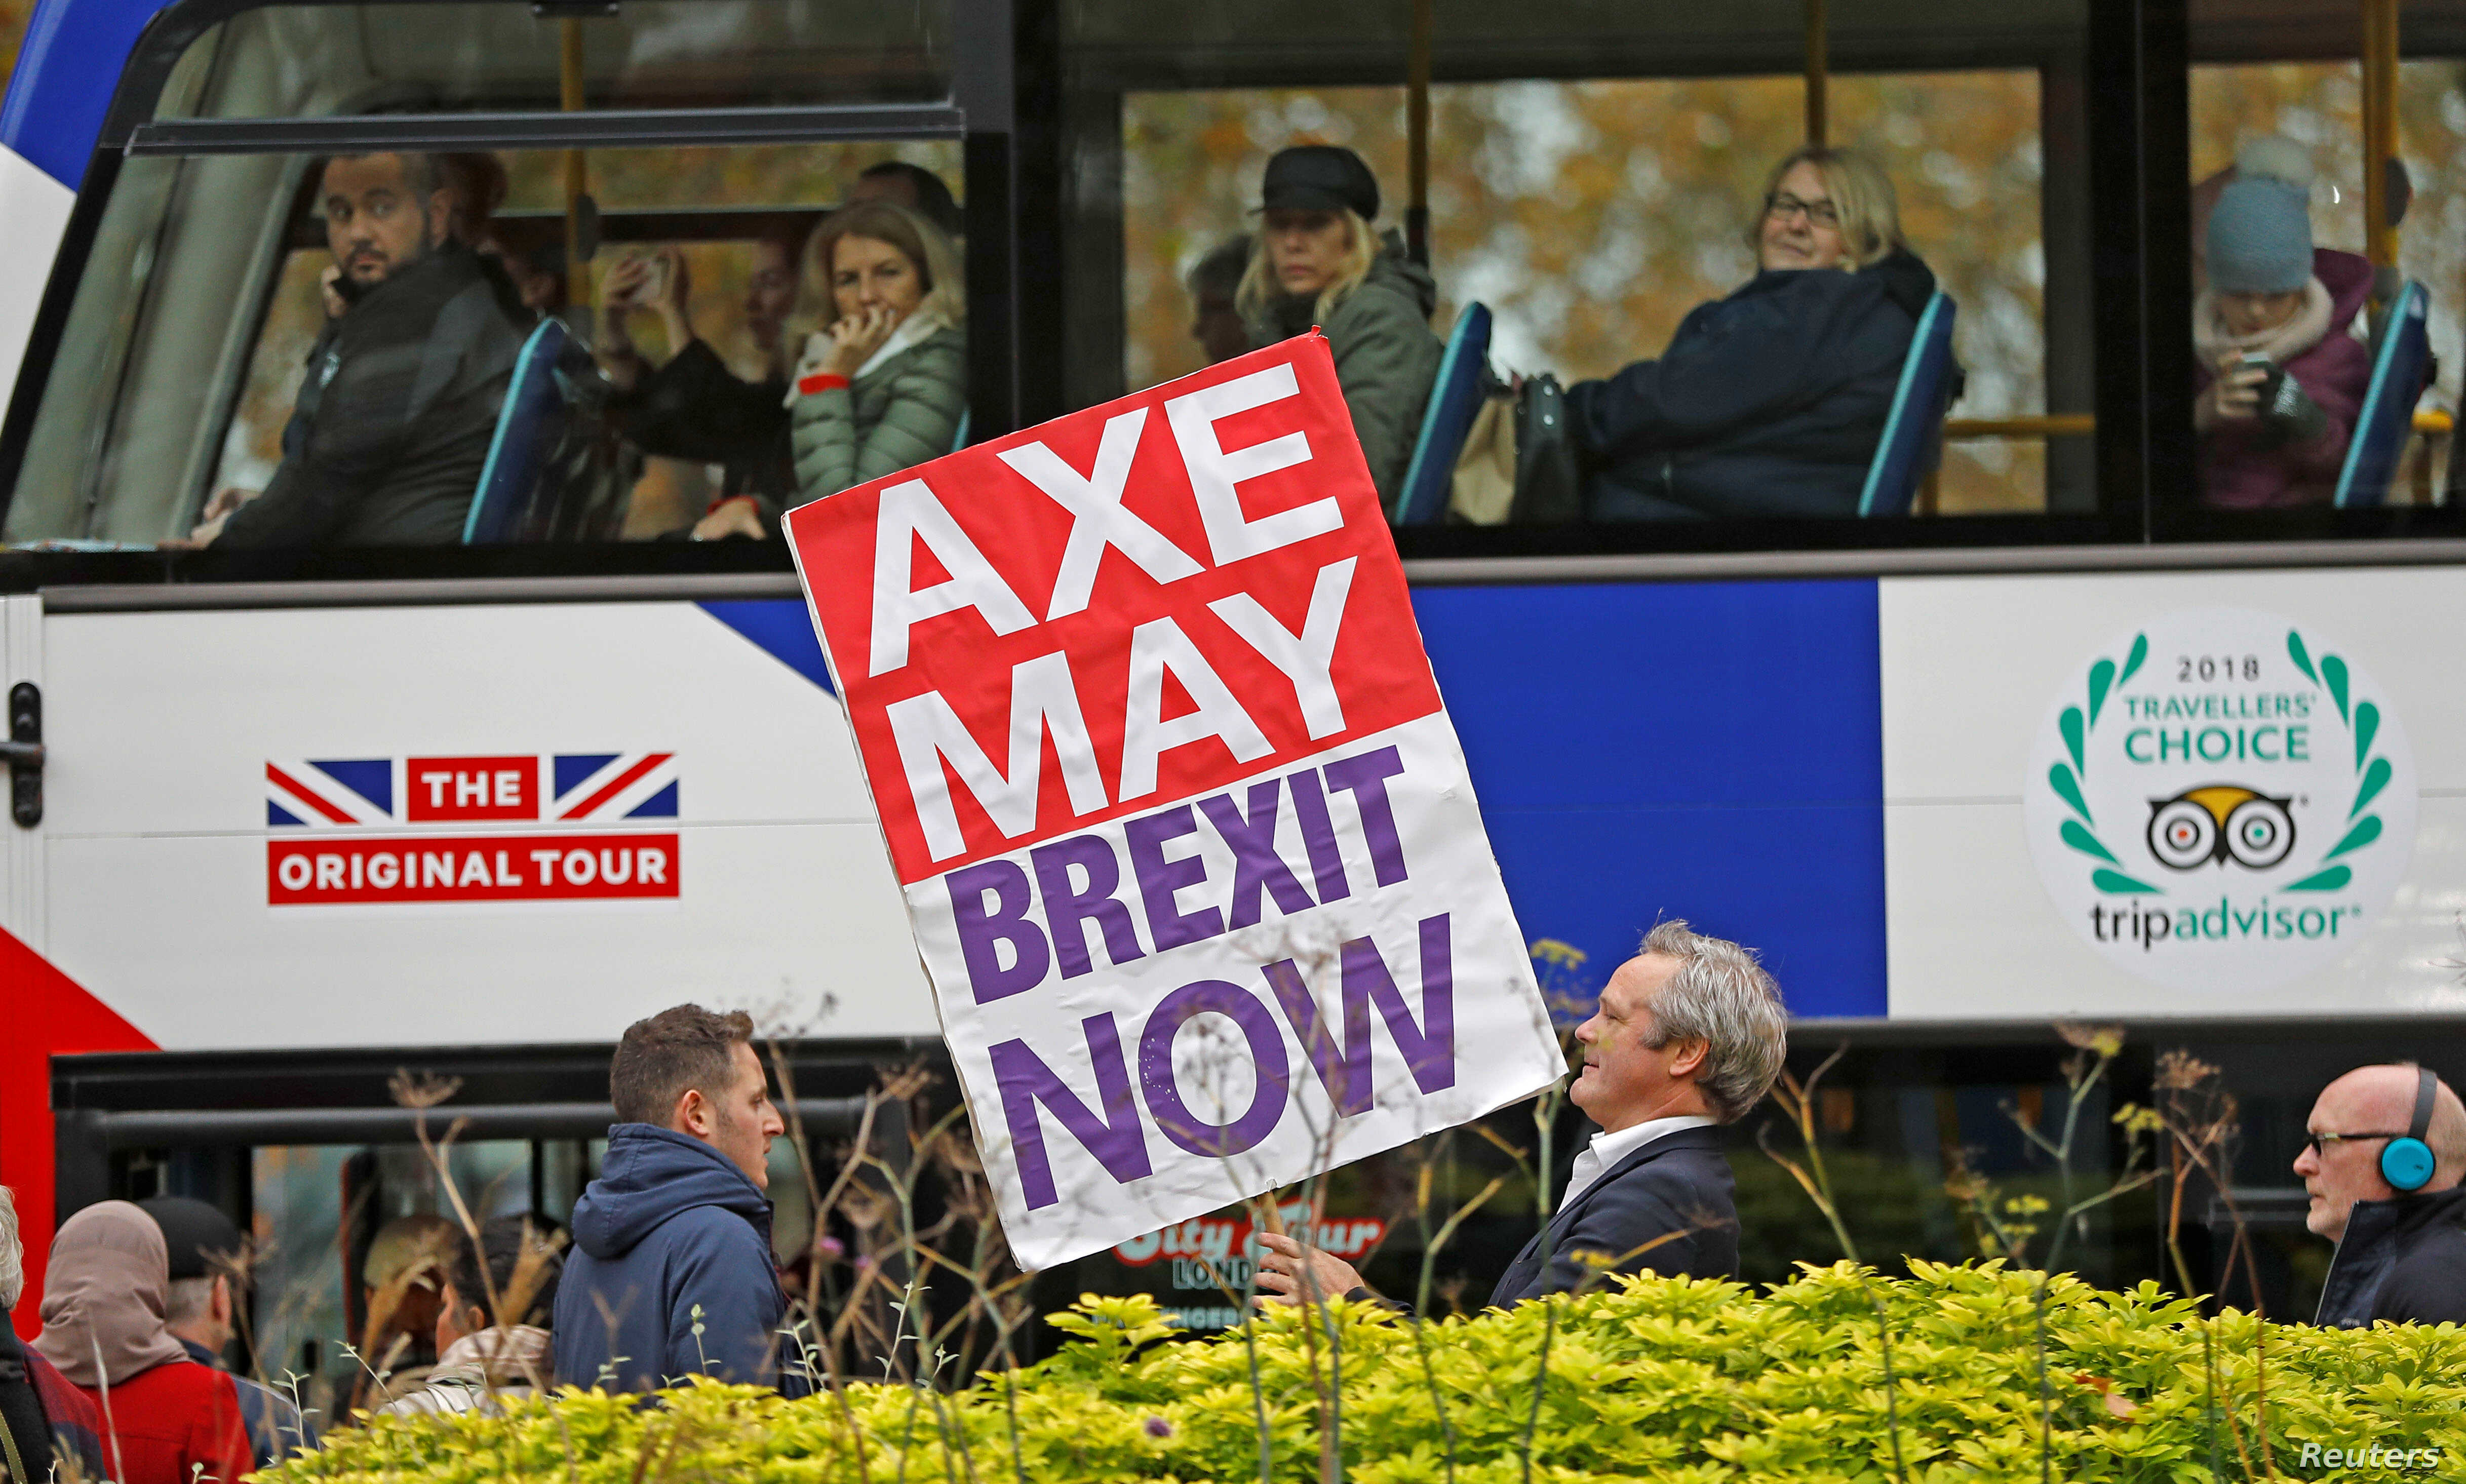 A pro-Brexit campaigner holds a placard as a tourist bus passes by in Westminster London, Britain, Nov. 16, 2018.